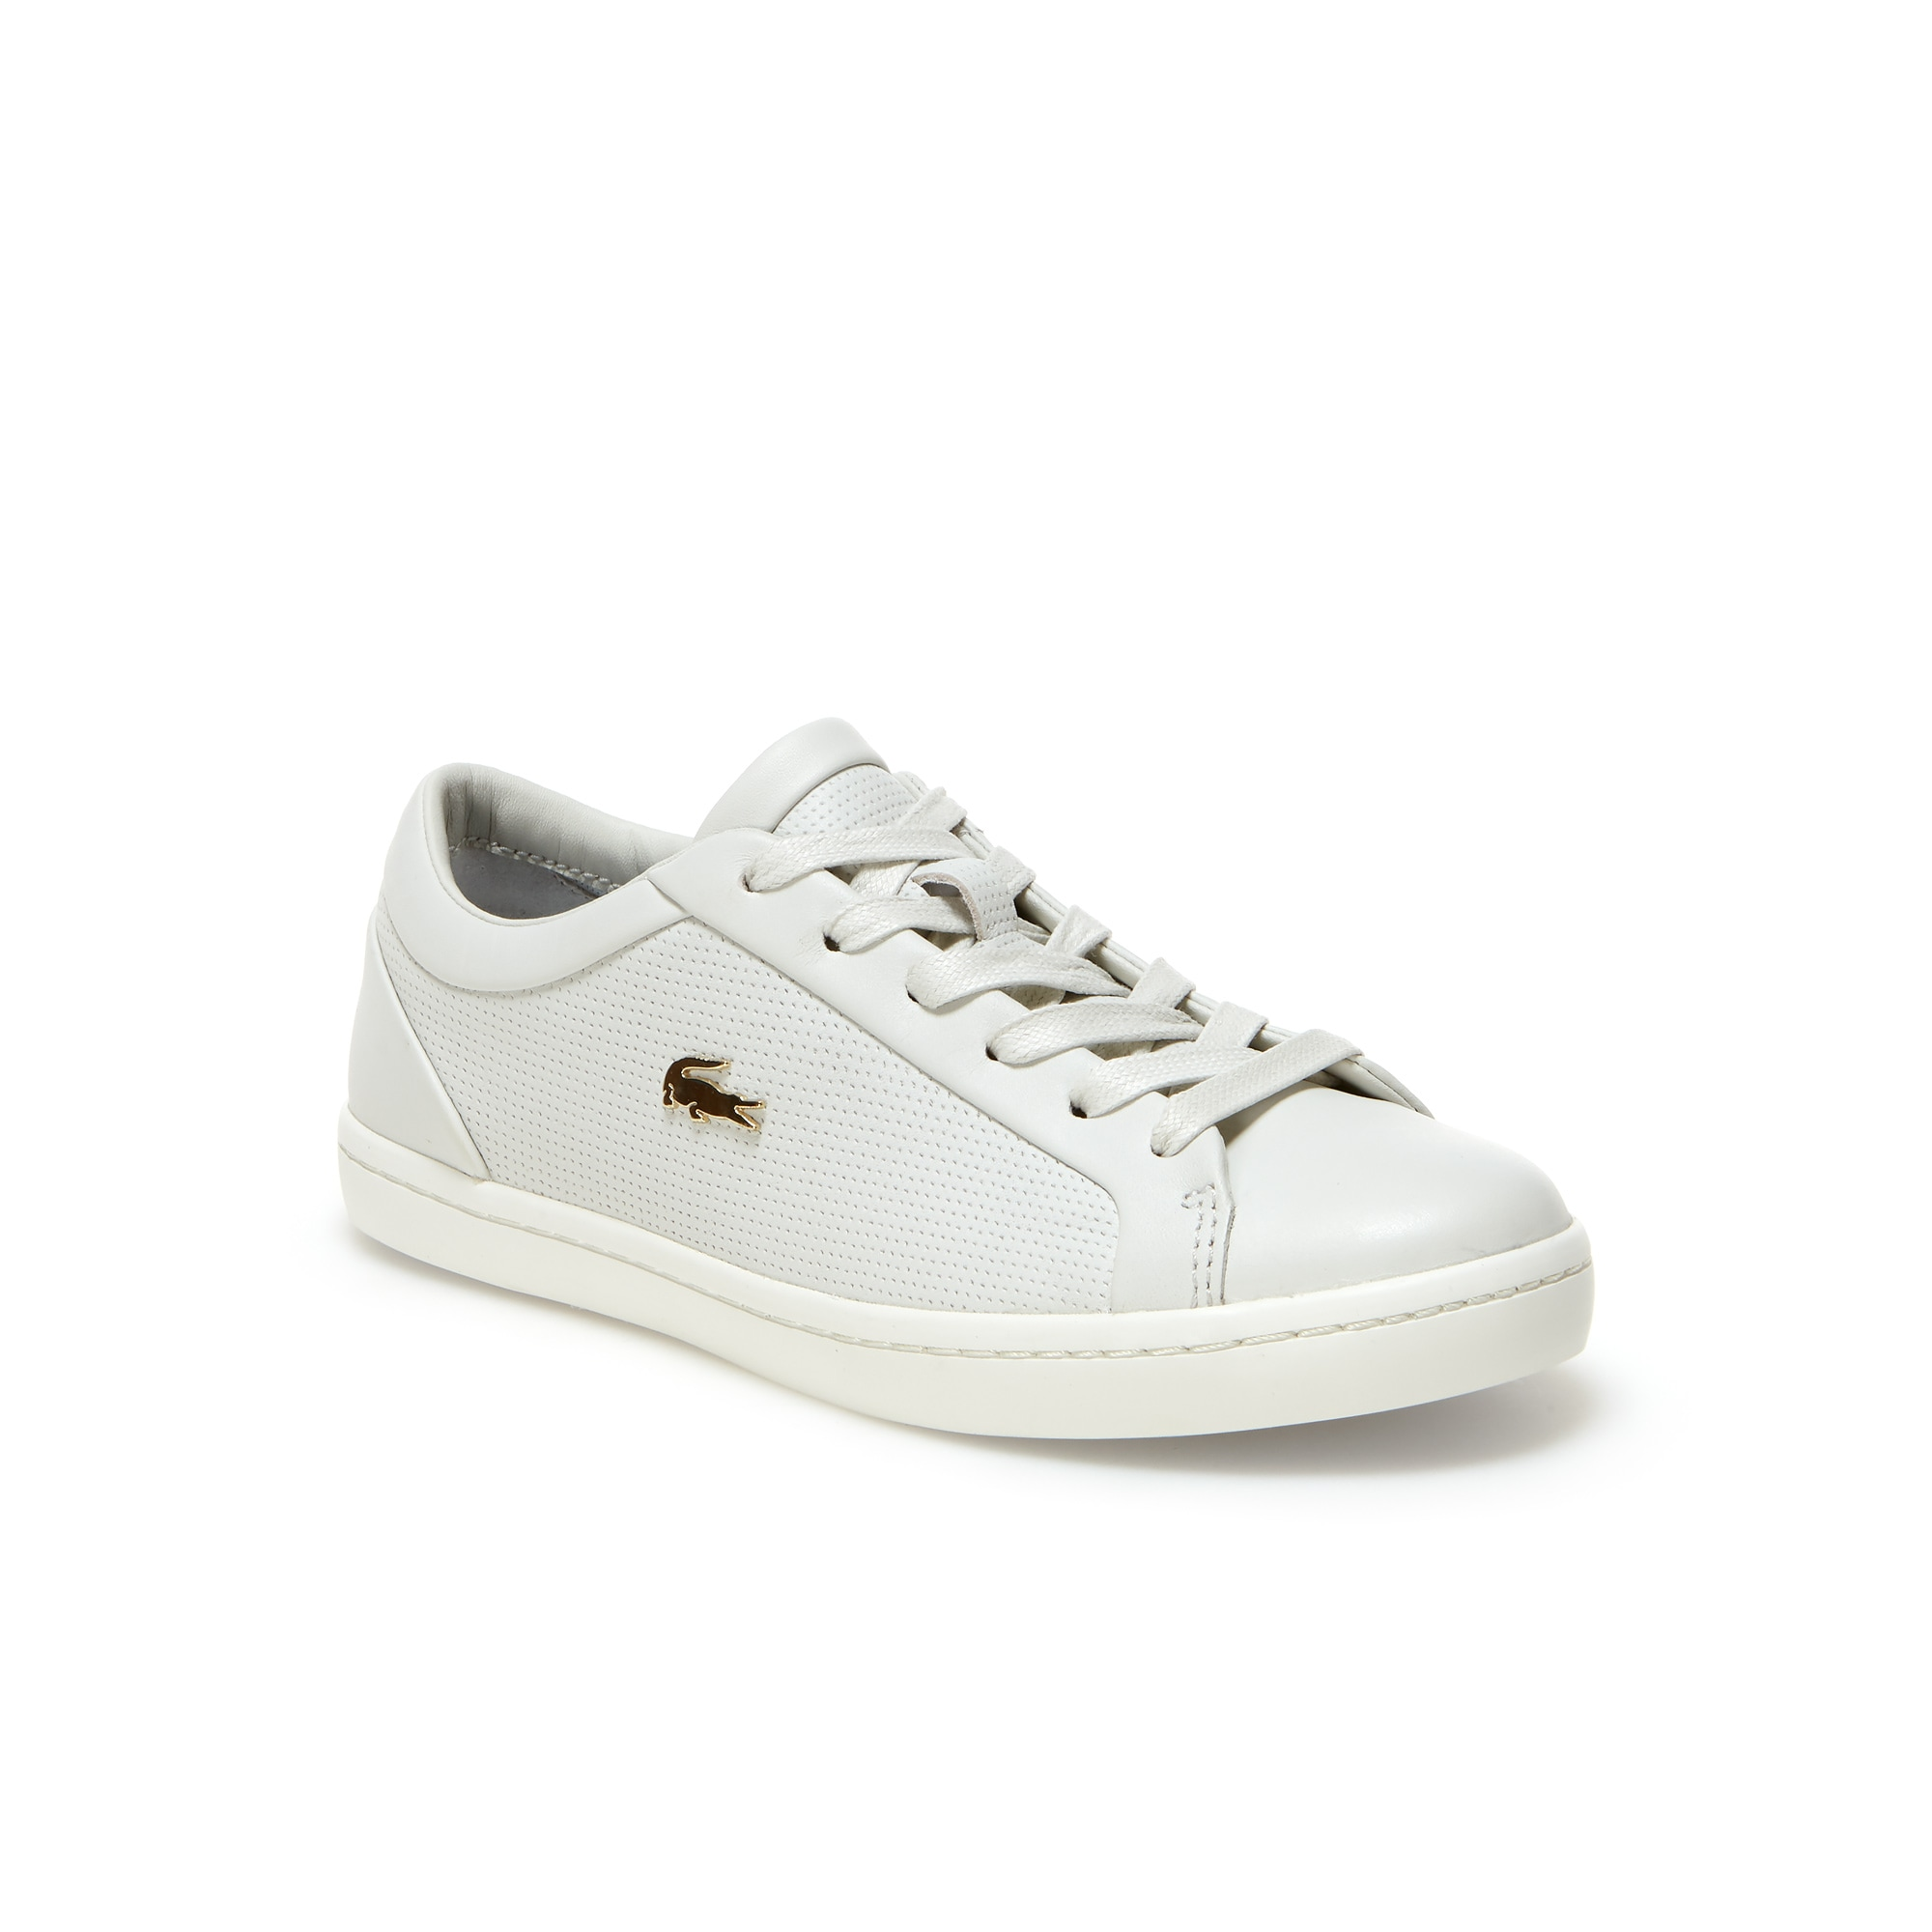 dd8e20fb88ee Women s Straightset Nappa Leather Trainers